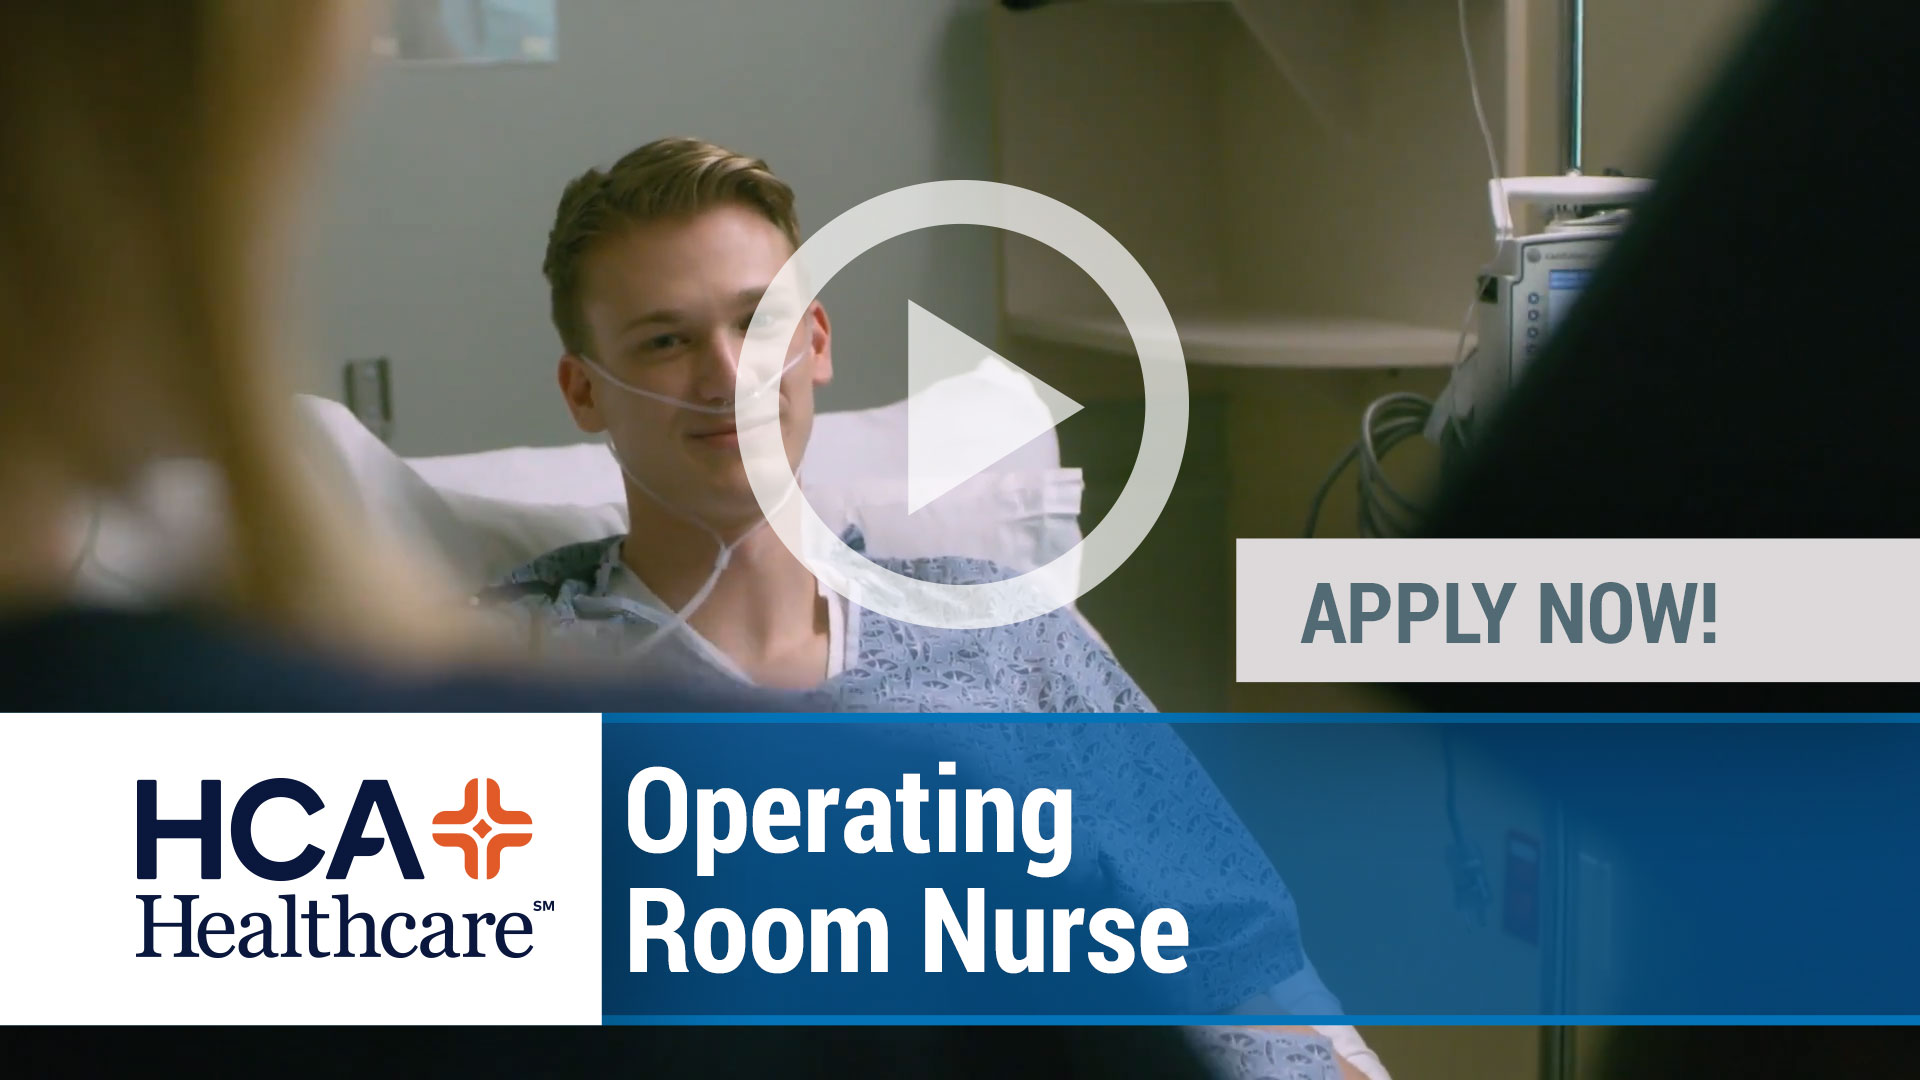 Watch our careers video for available job opening Operating Room Nurse in Conroe, Texas